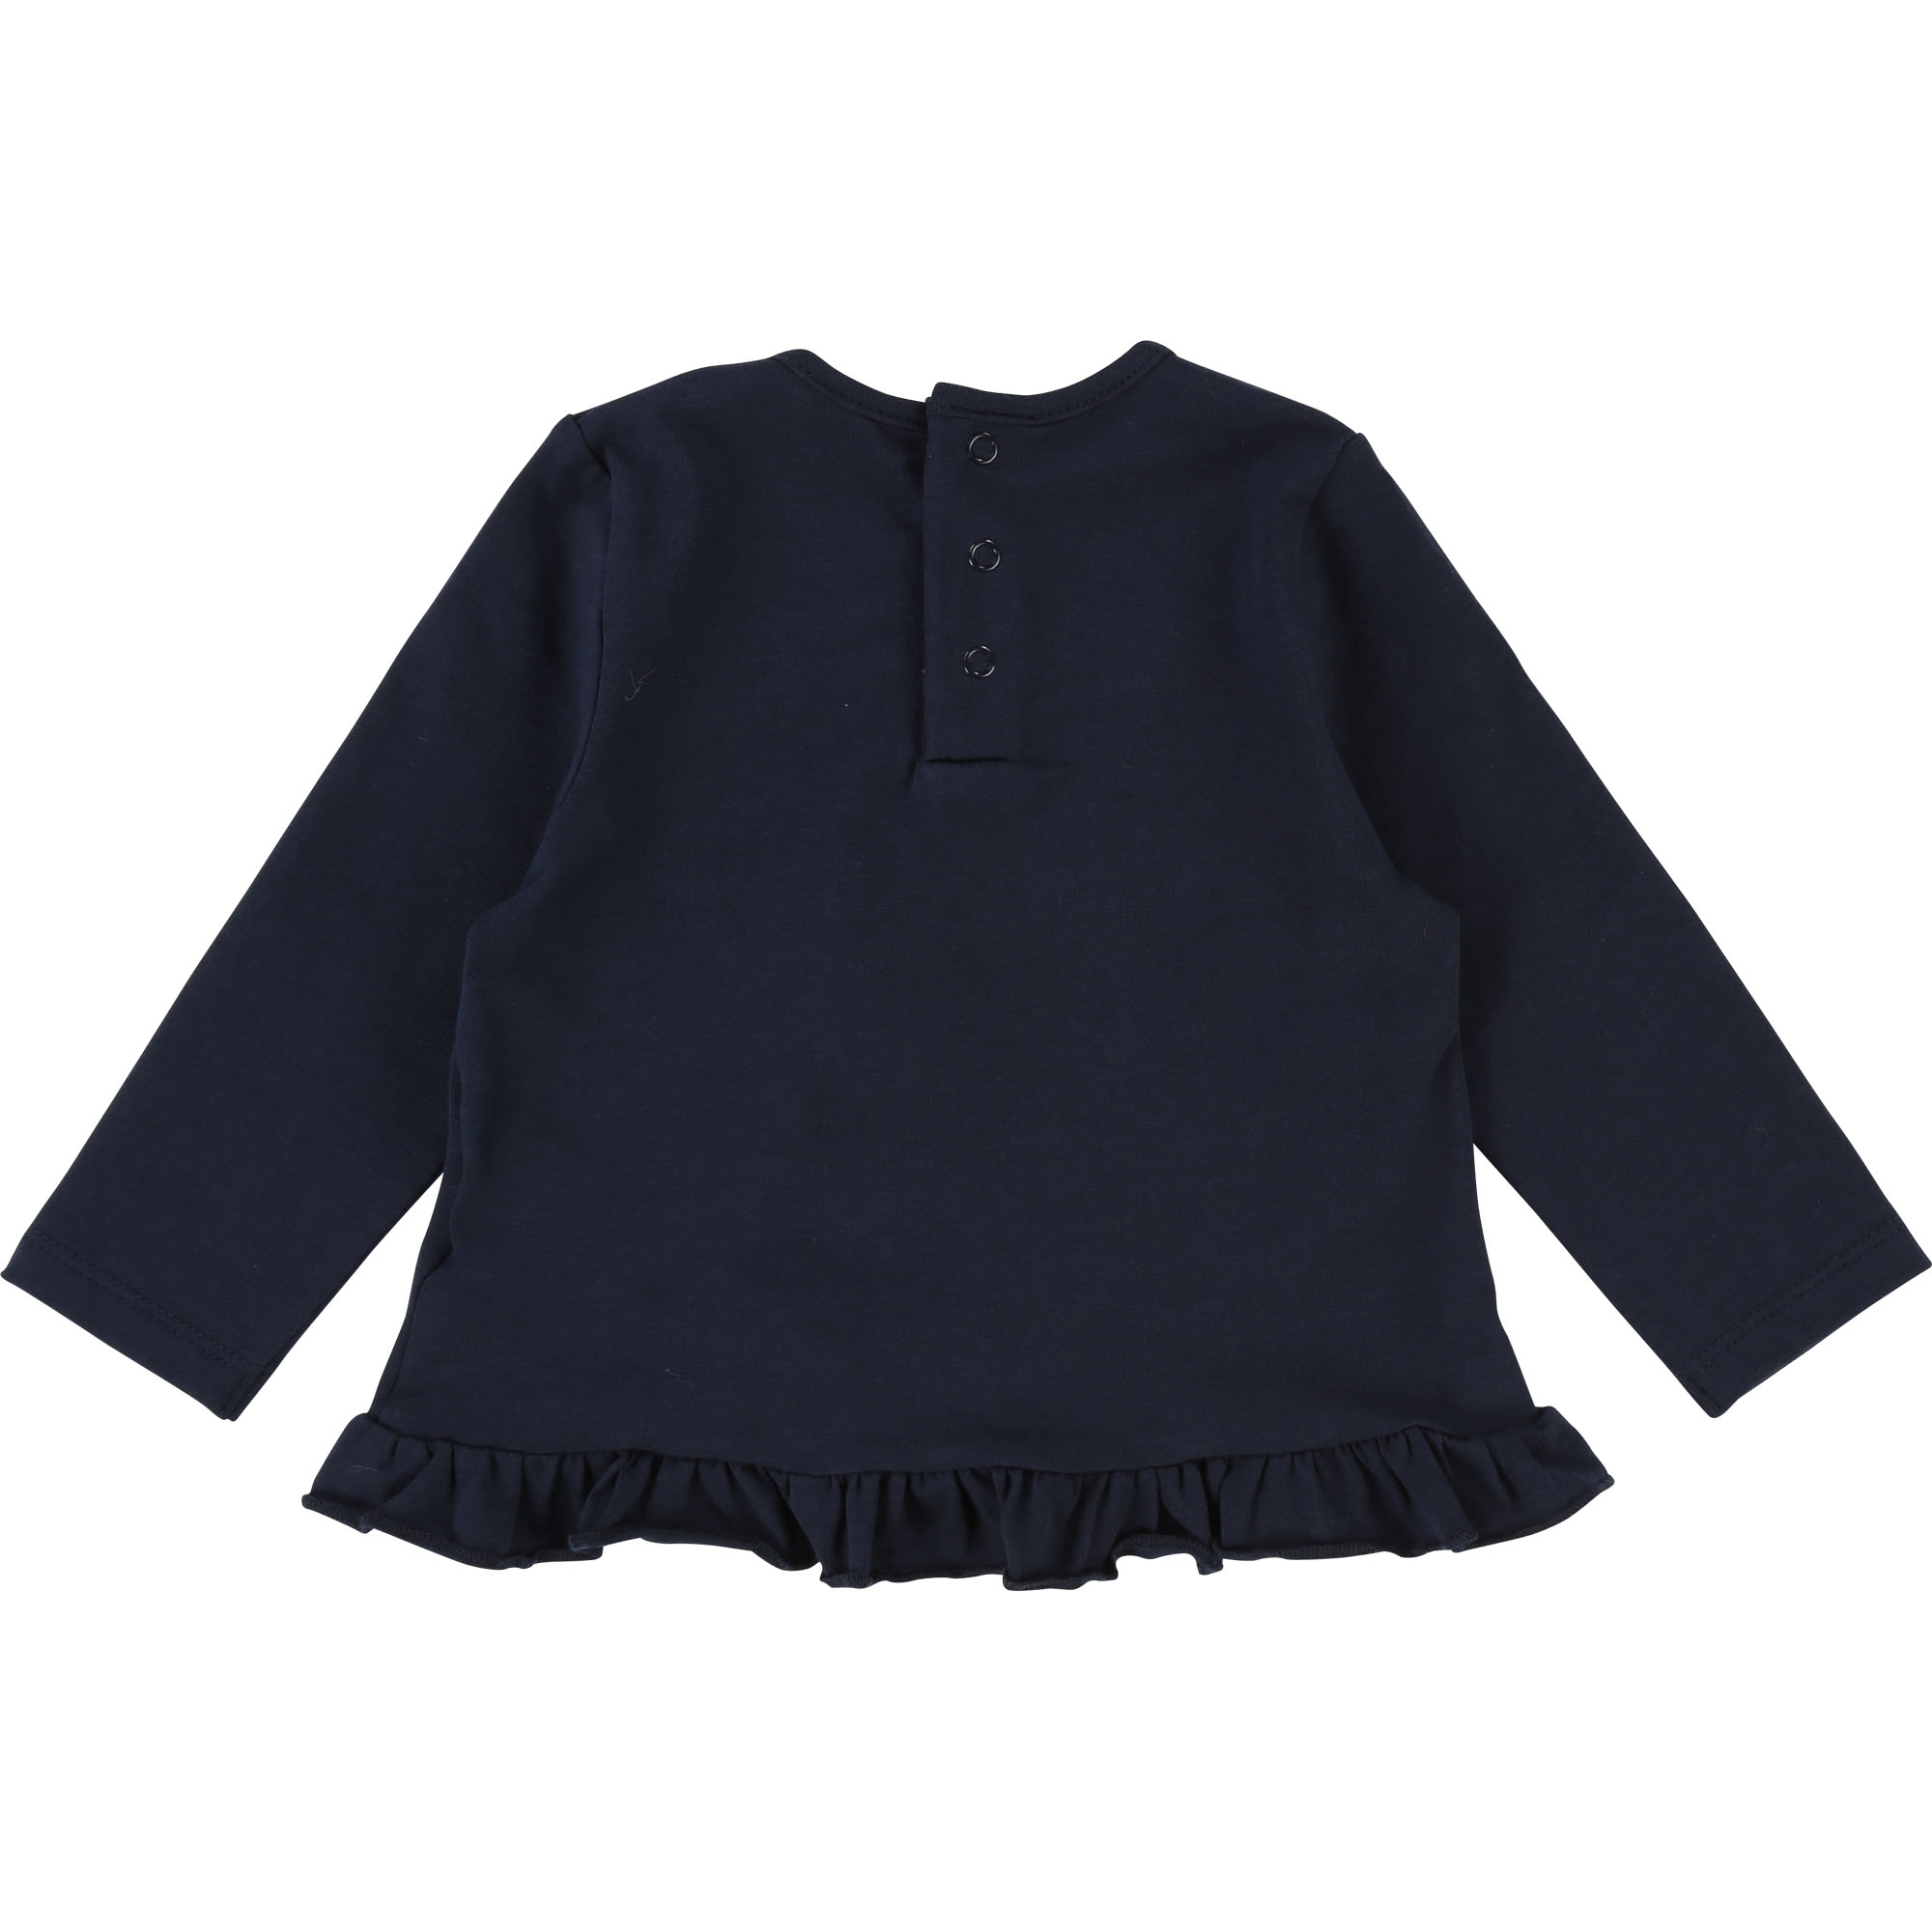 Ruffle coton elastane t-shirt BILLIEBLUSH for GIRL